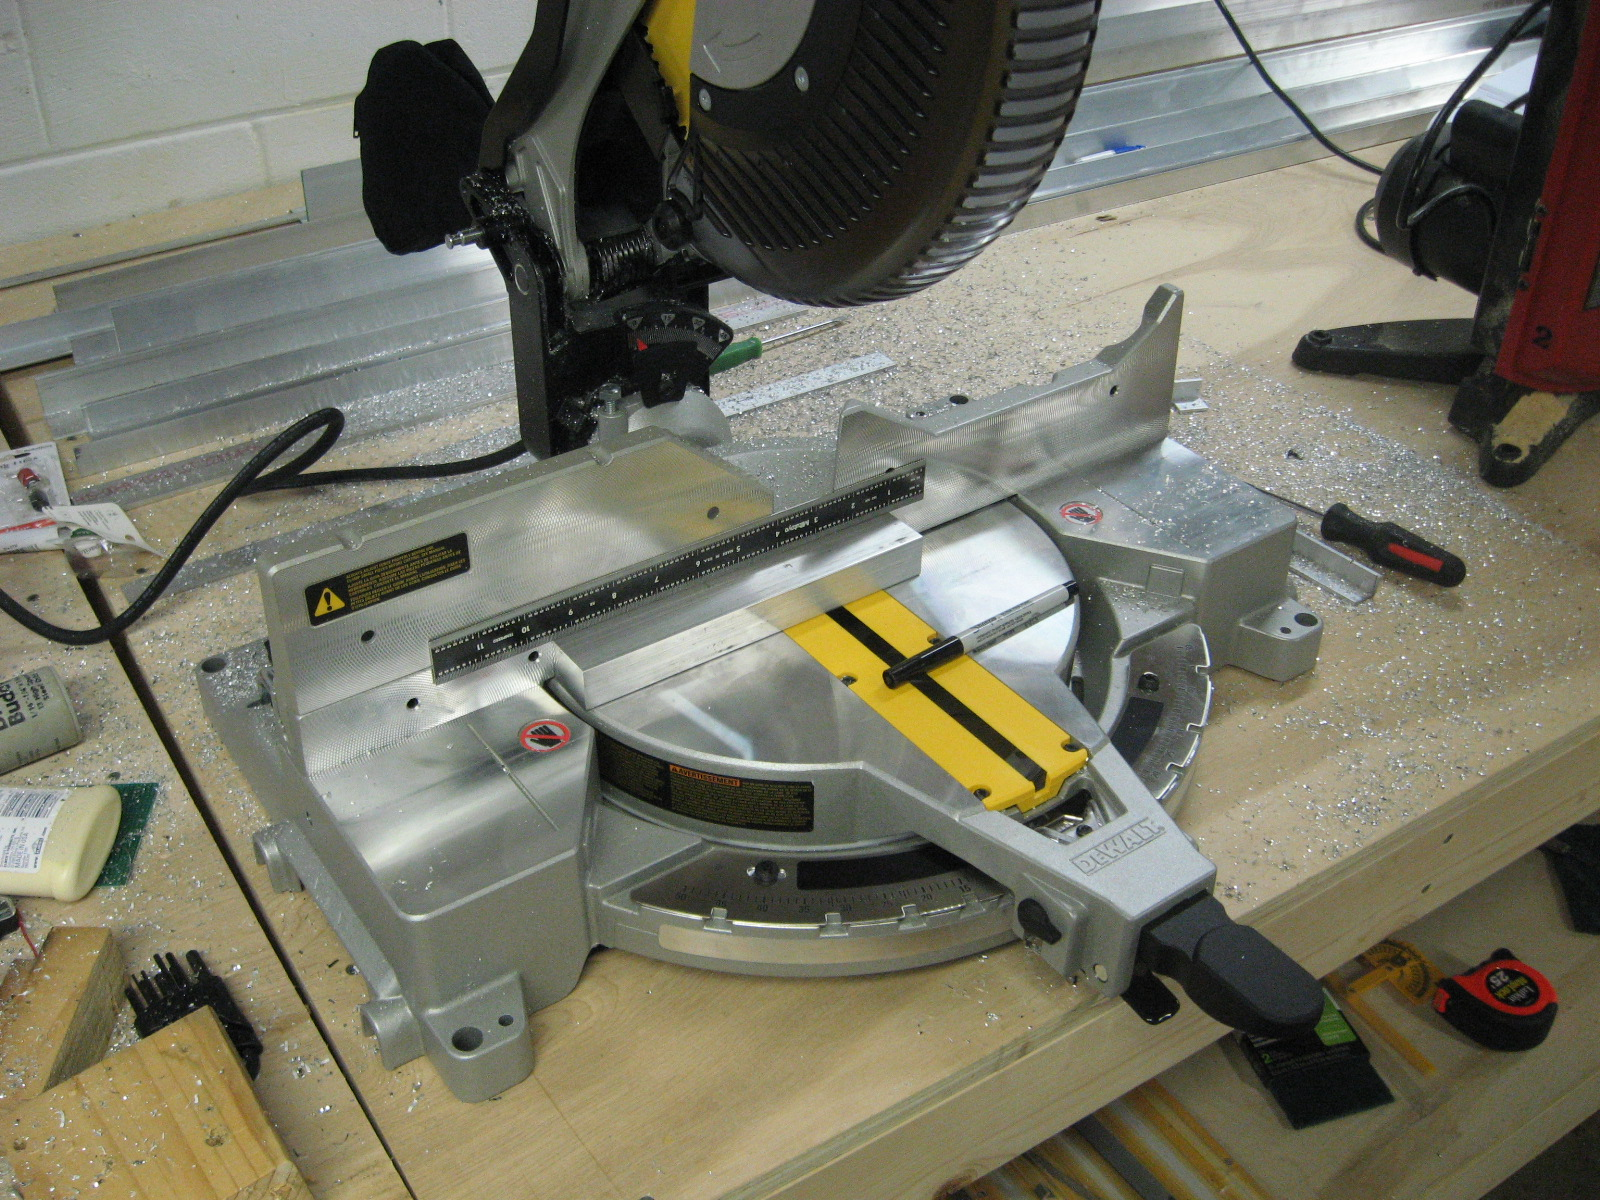 miter saw labeled. new miter saw with a block of aluminum labeled